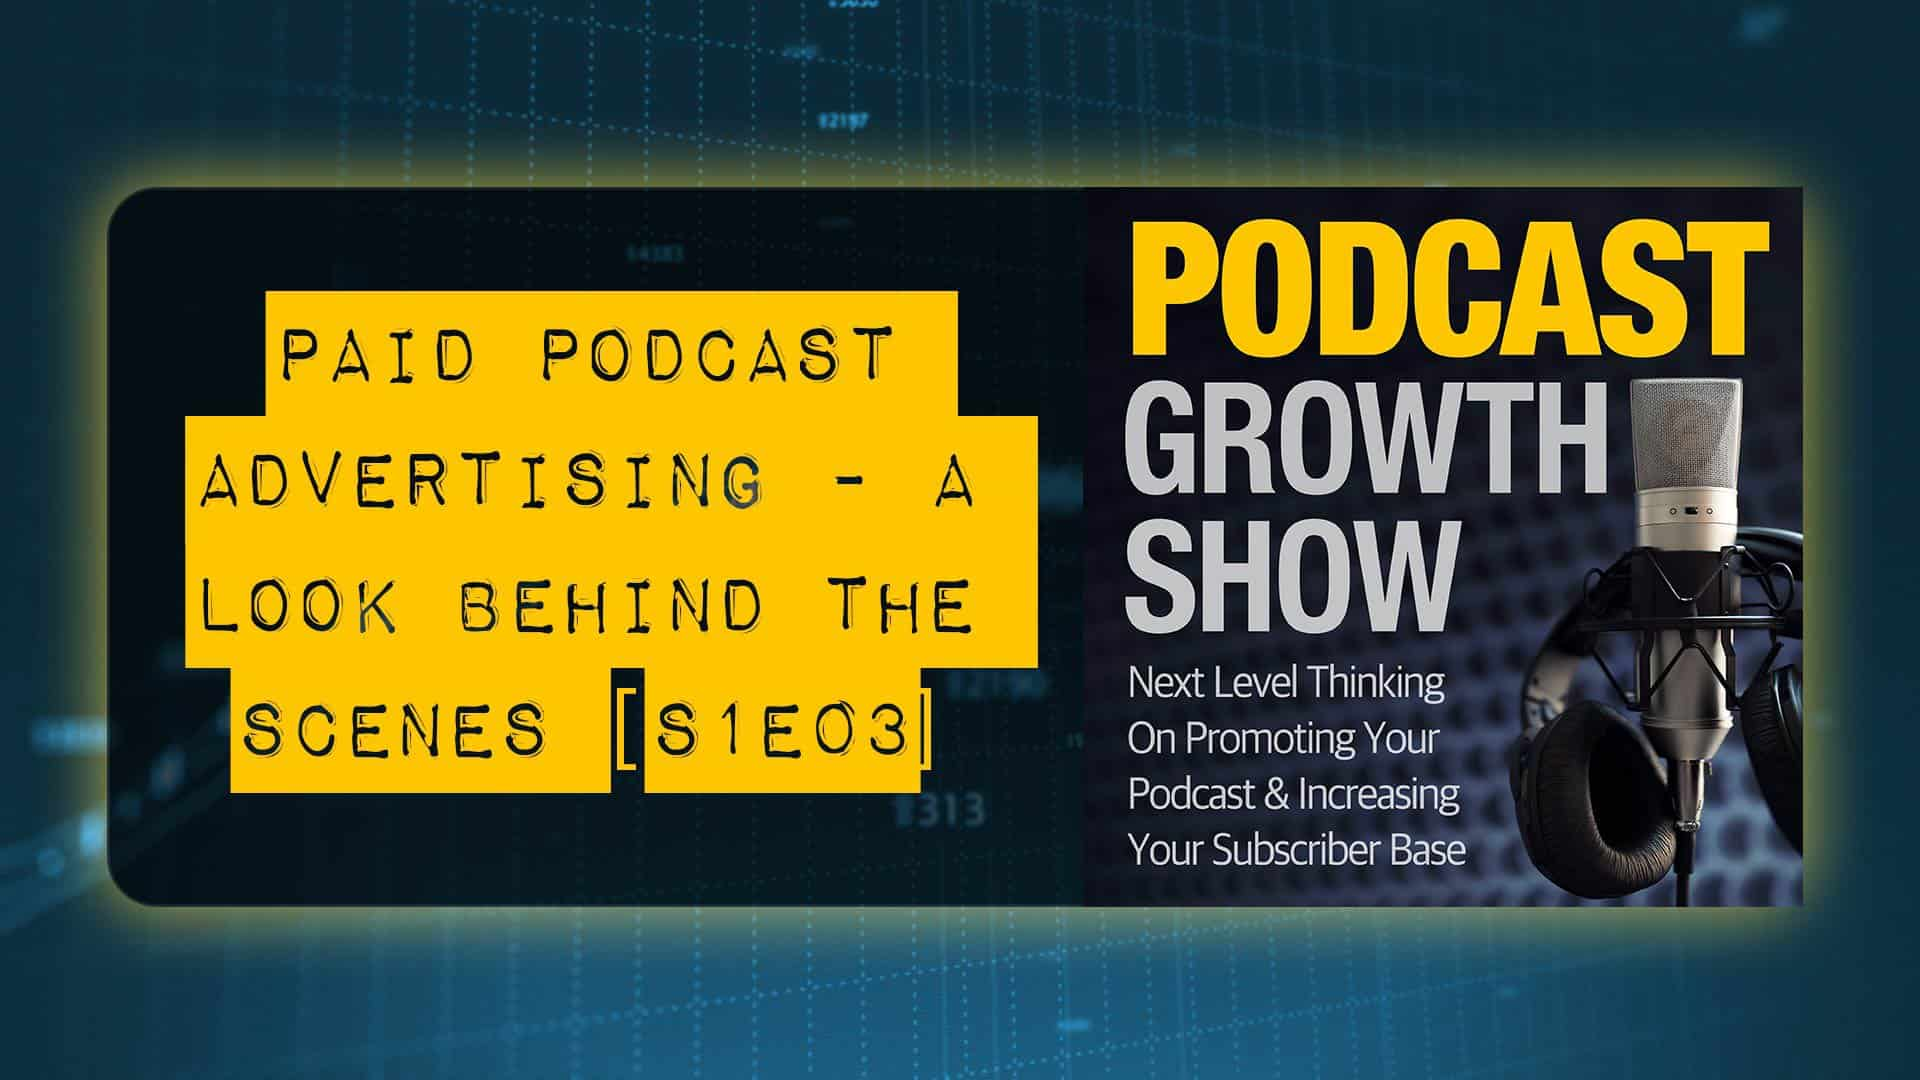 Paid Podcast Advertising - A Look Behind The Scenes